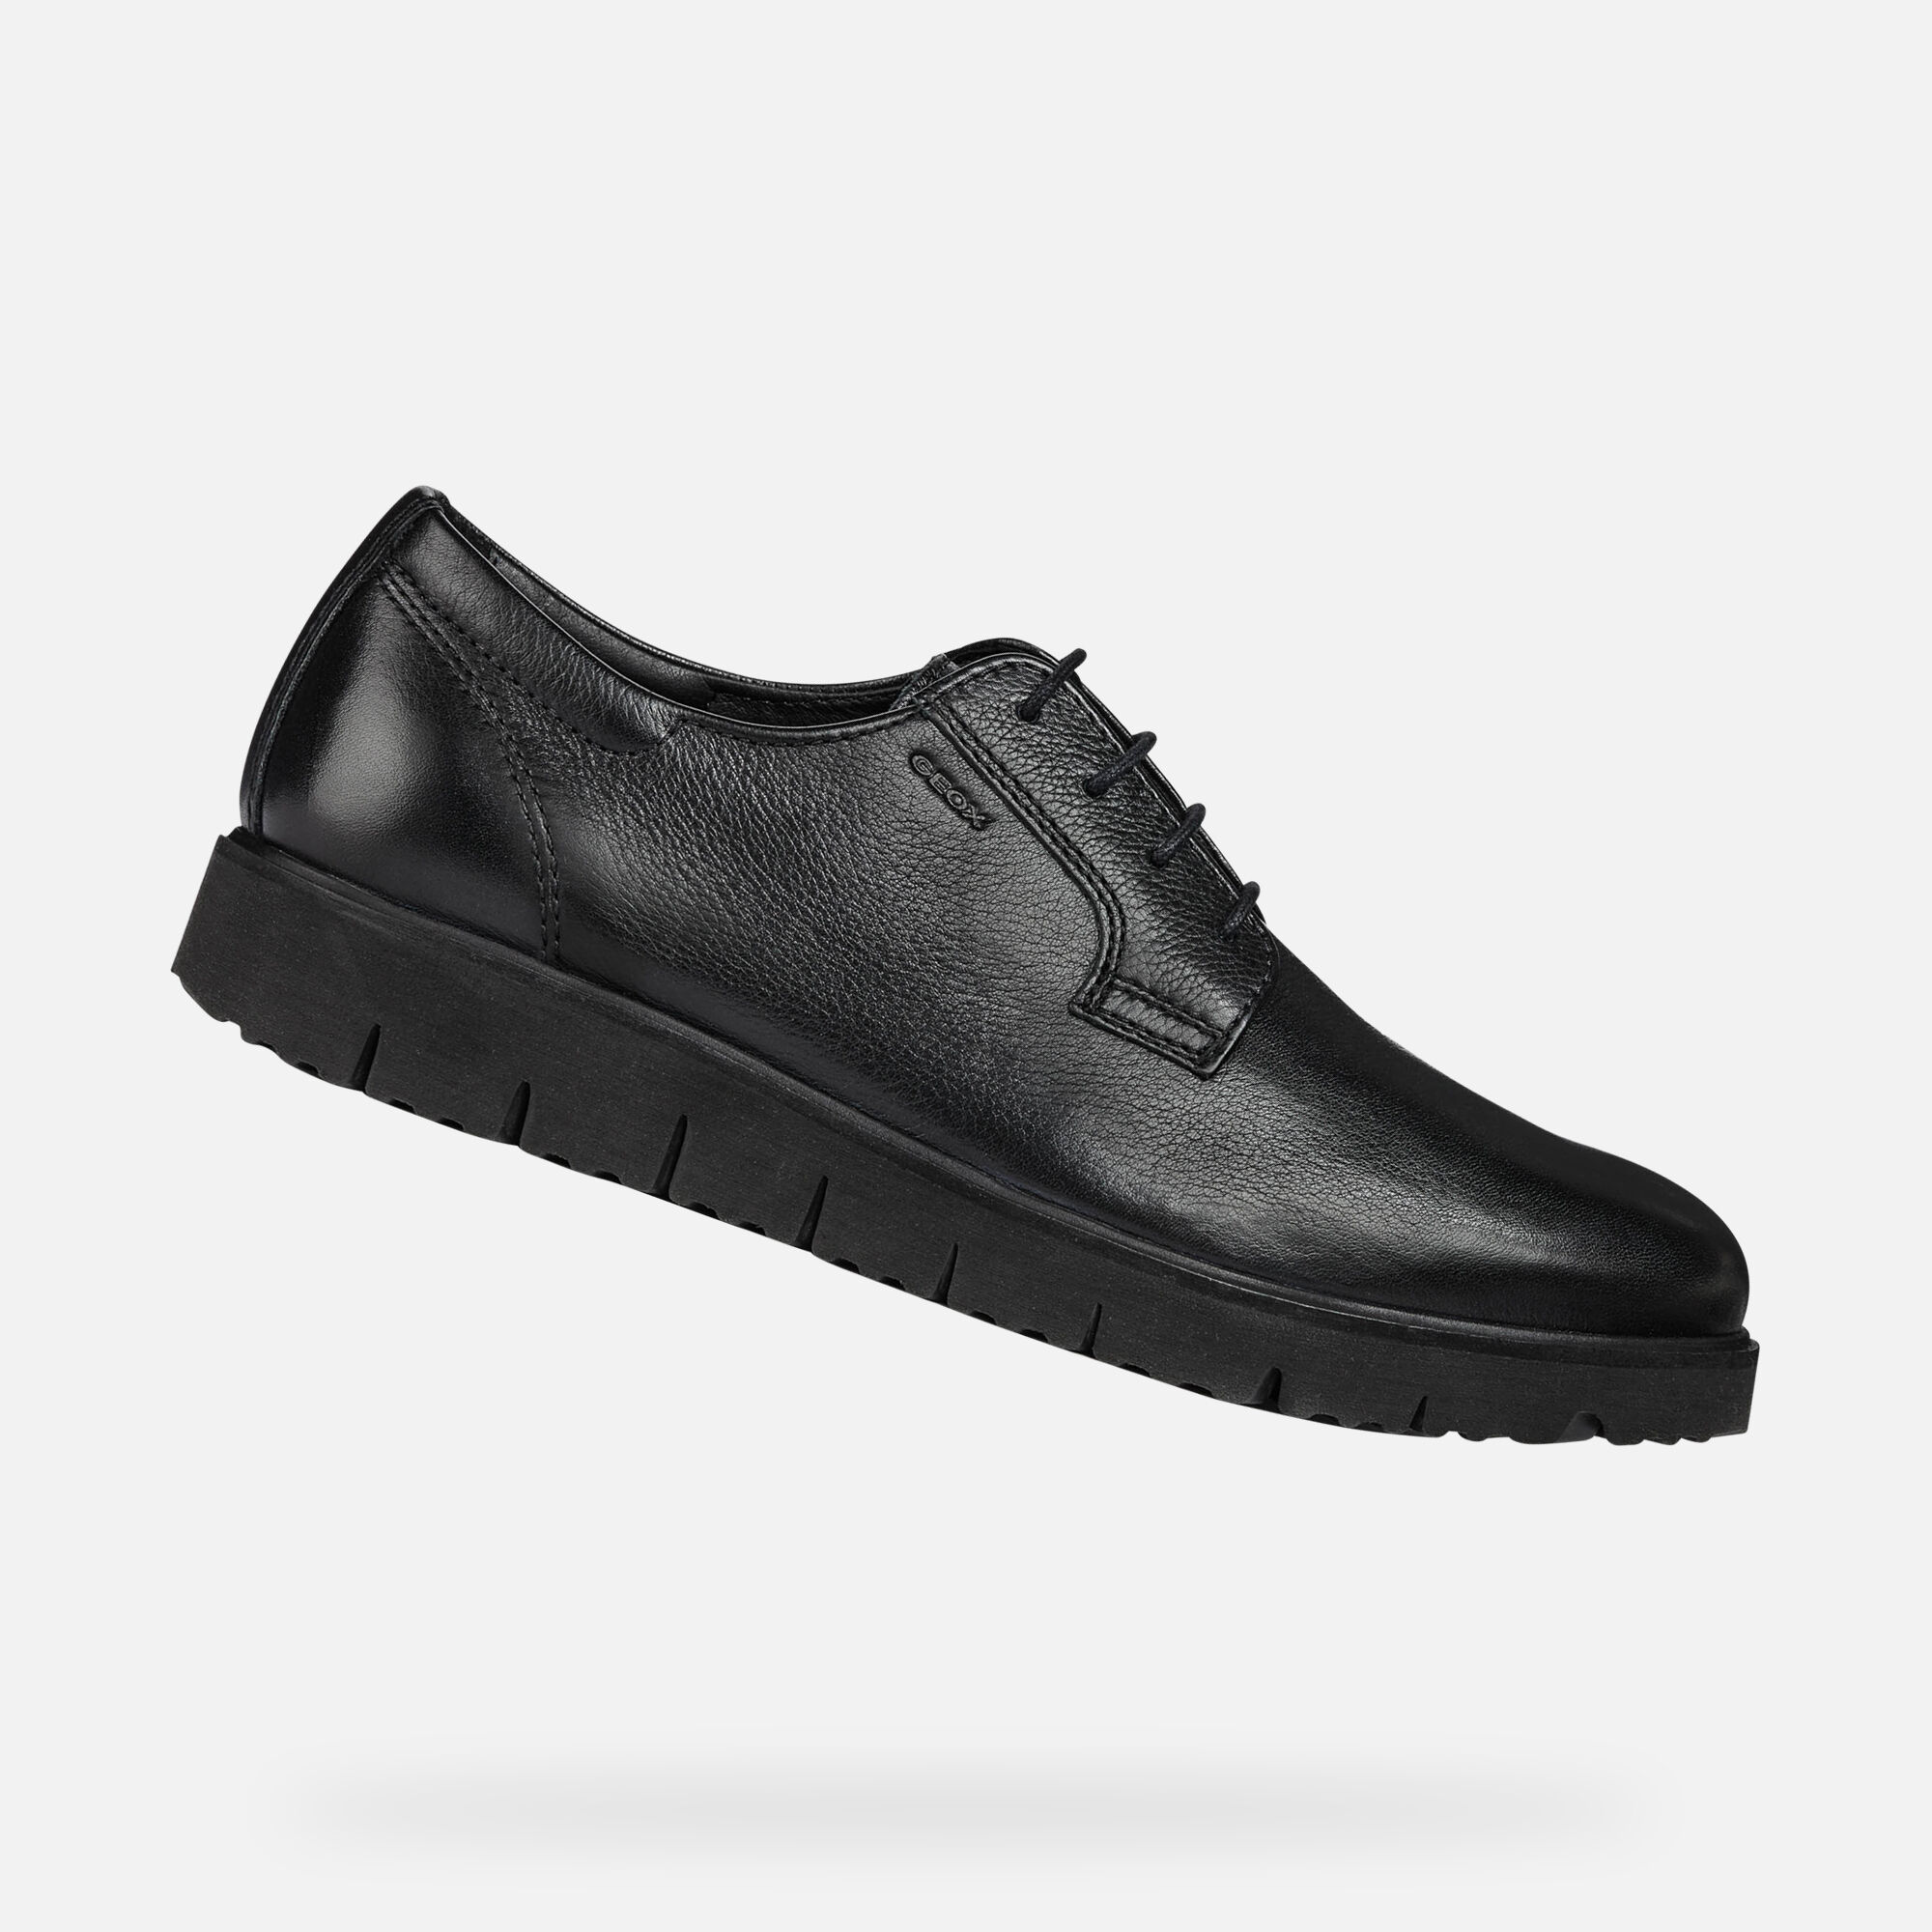 NEW PLUGES CASUAL SHOES from men   Geox